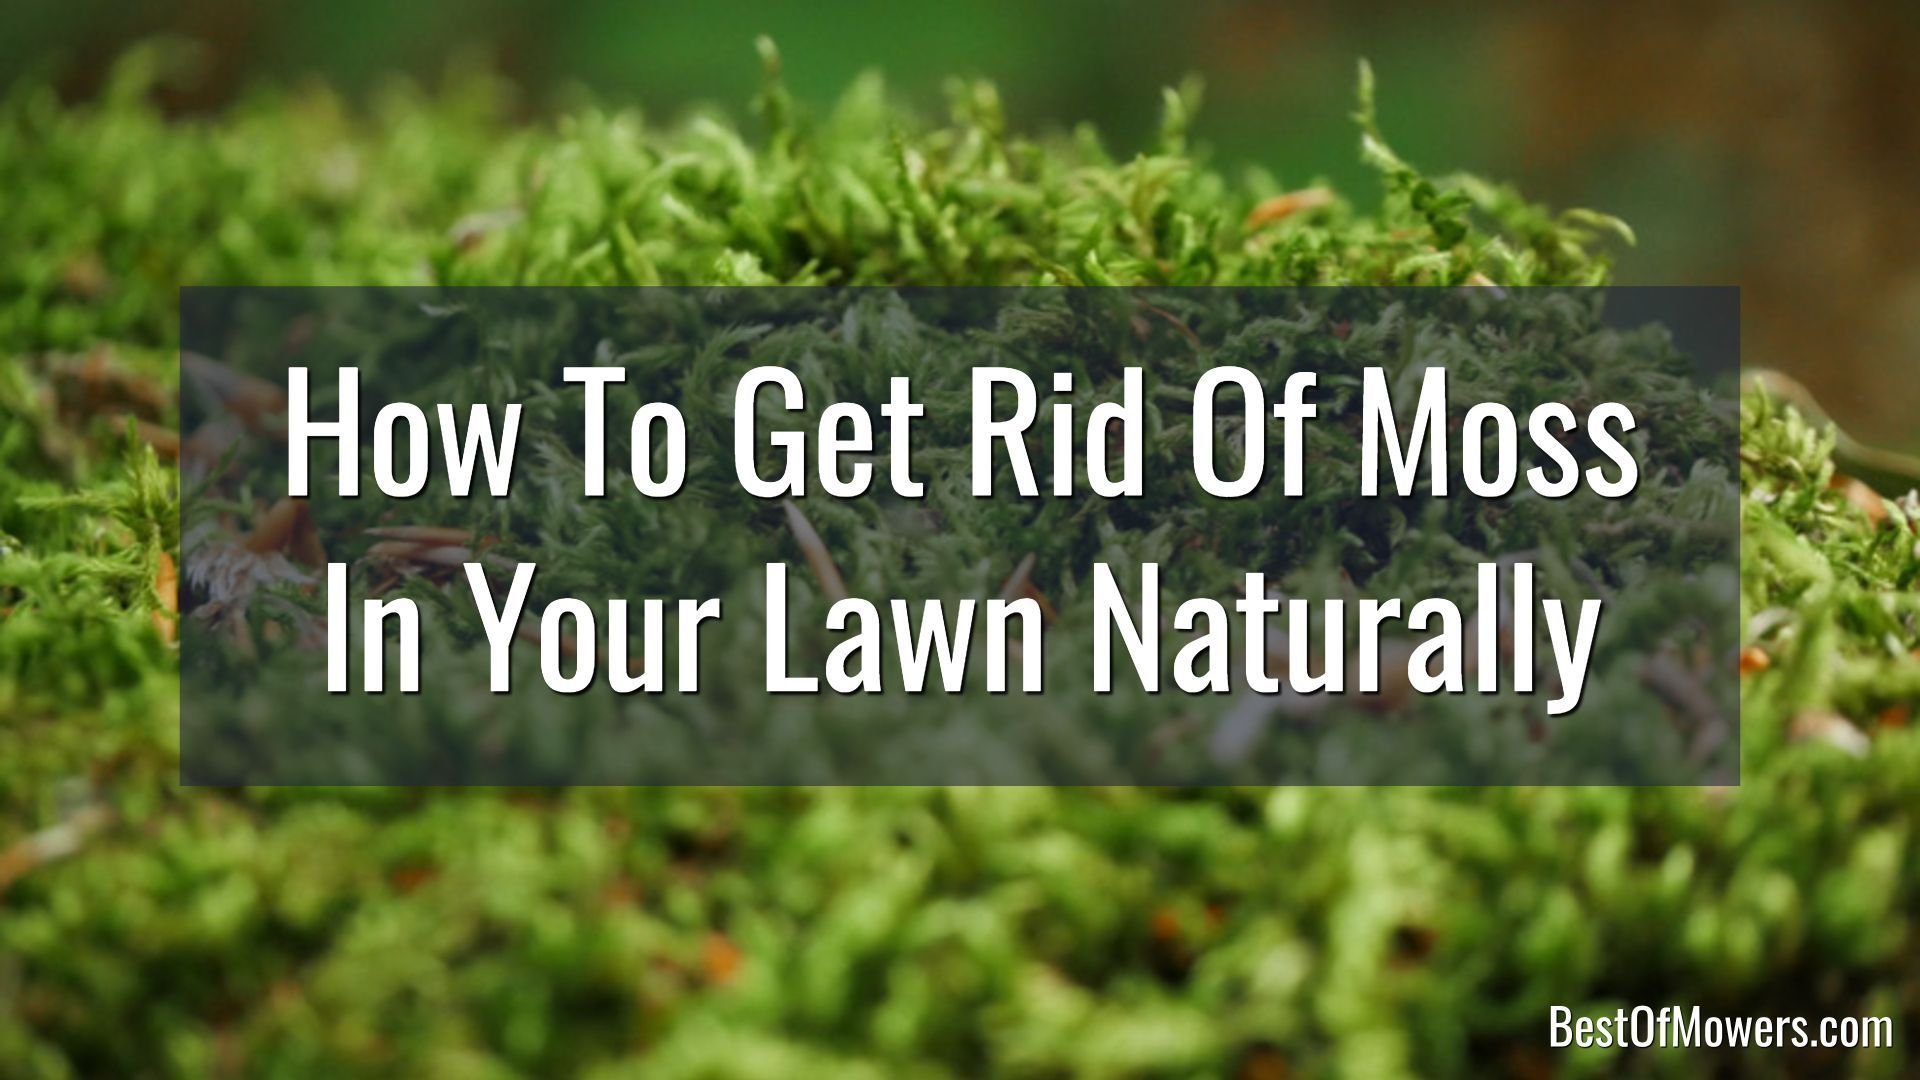 10a002bb3b00c34a6c565ccfcd96d1d0 - How To Get Rid Of Moss In Grass Naturally